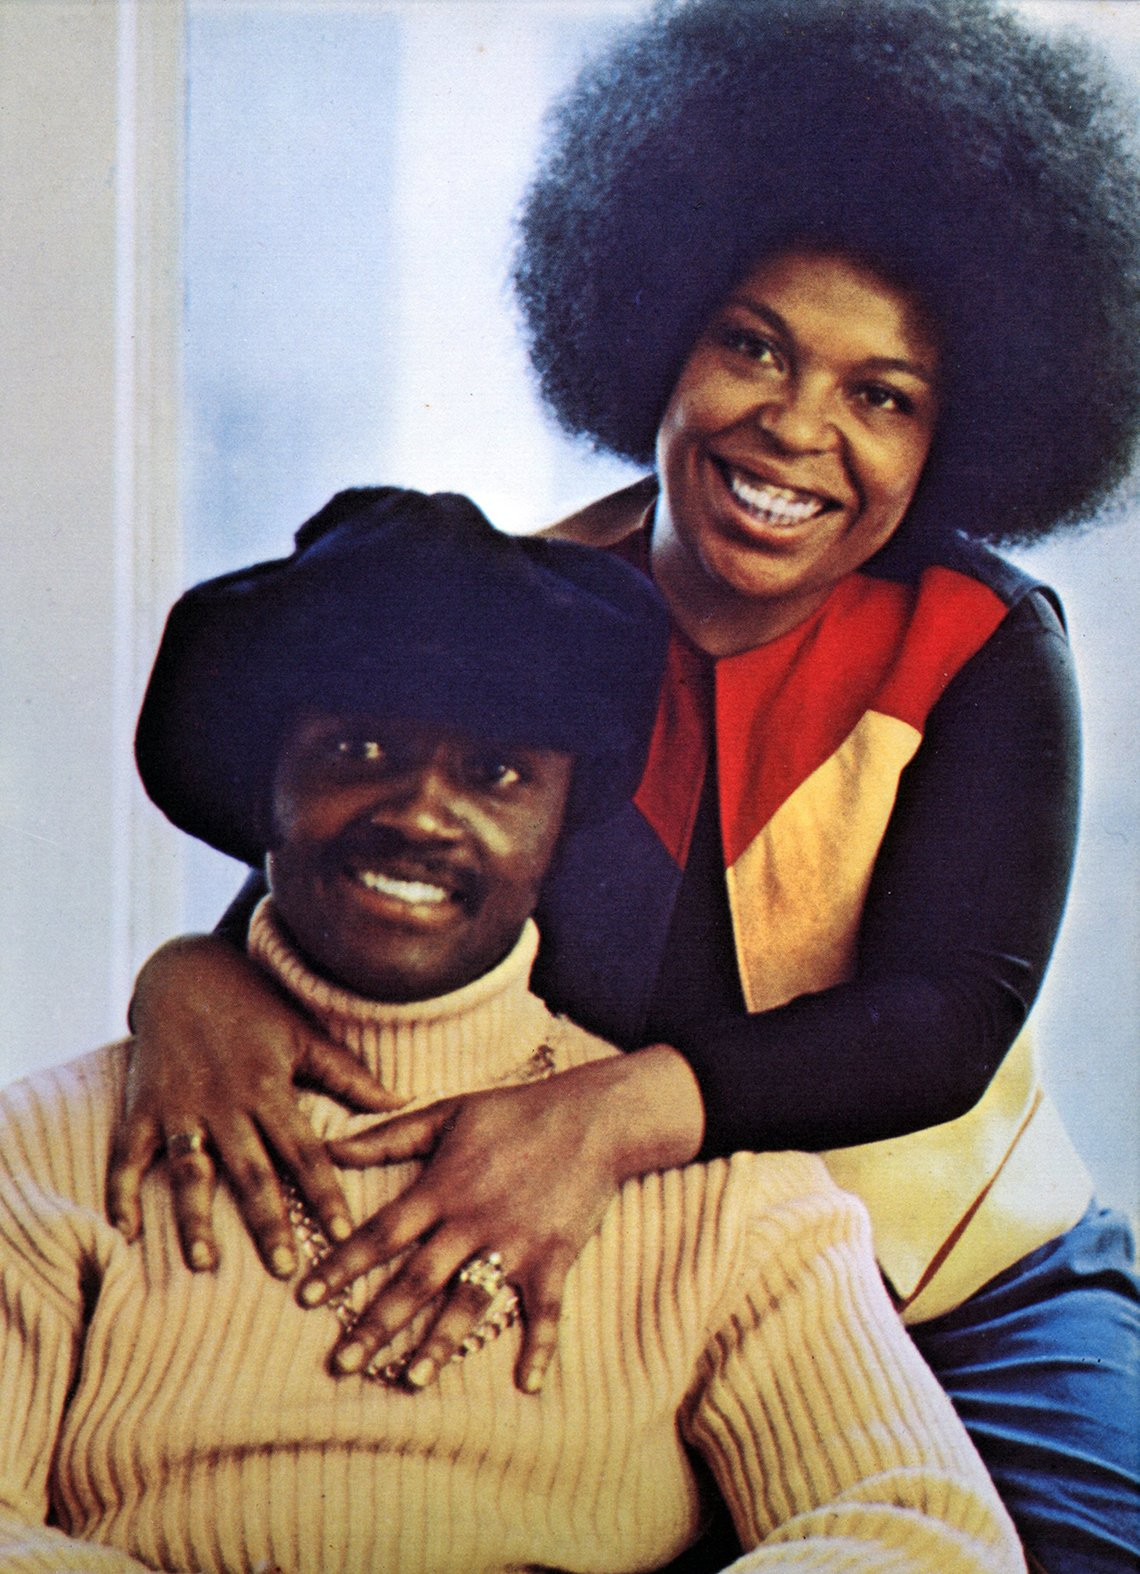 Roberta Flack and Donny Hathaway sitting together posing for a portrait